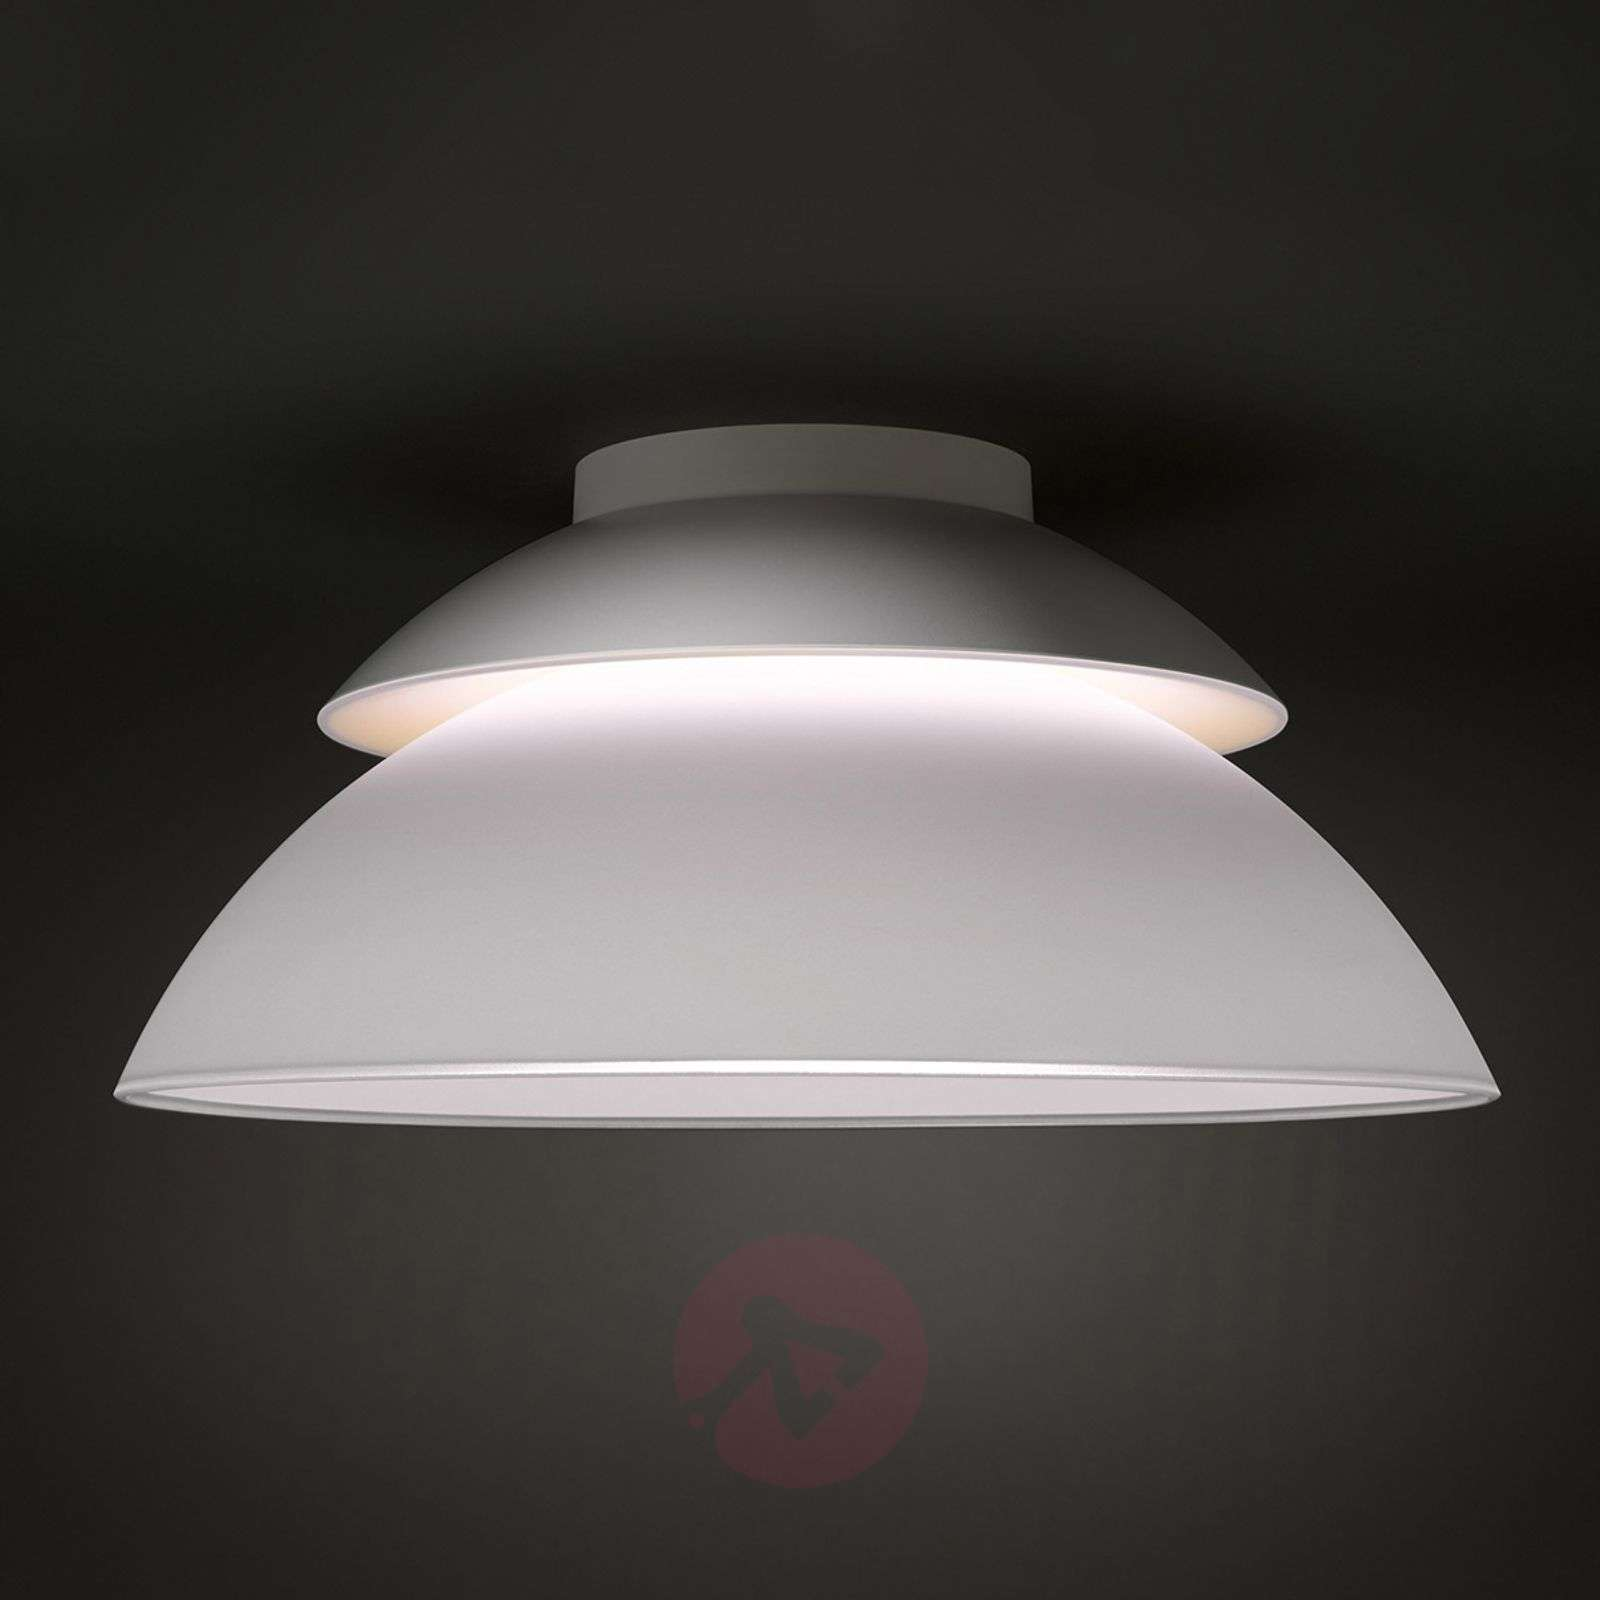 Philips Hue Beyond Ceiling Light Lights Ie